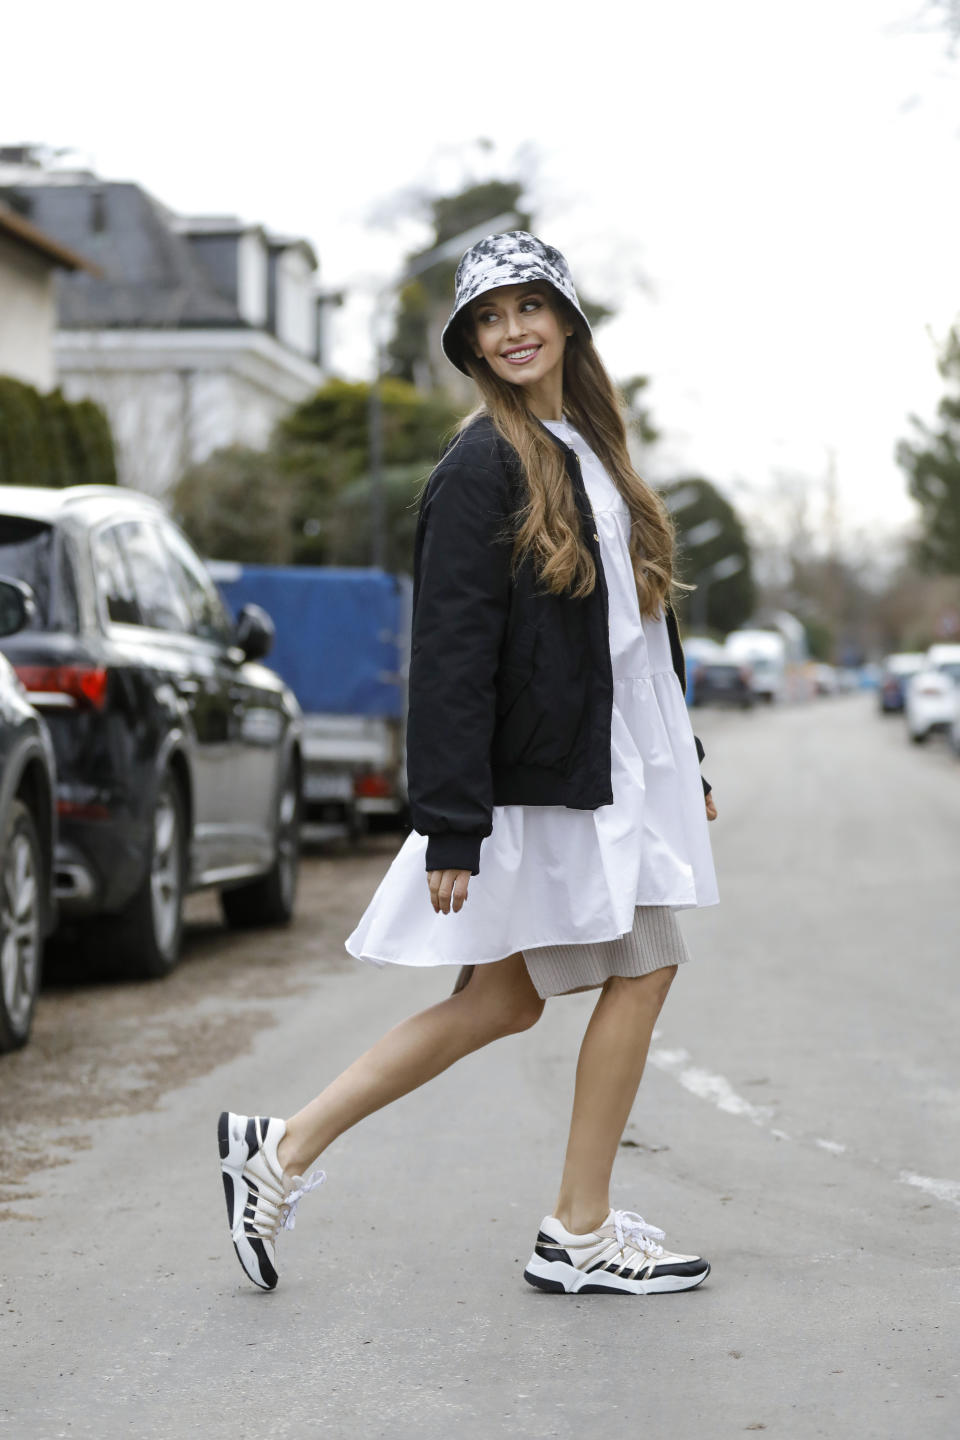 MUNICH, GERMANY - FEBRUARY 18: Influencer and TV host Cathy Hummels wearing a black and white tie dye bucket hat by Reserved, a beige skirt by Reserved, a black jacket by Yes My Love, a long white blouse by Devotion Twins and beige and black sneaker with gold stripes by Billi Bi during a street style shooting on February 18, 2021 in Munich, Germany. (Photo by Streetstyleshooters/Getty Images)